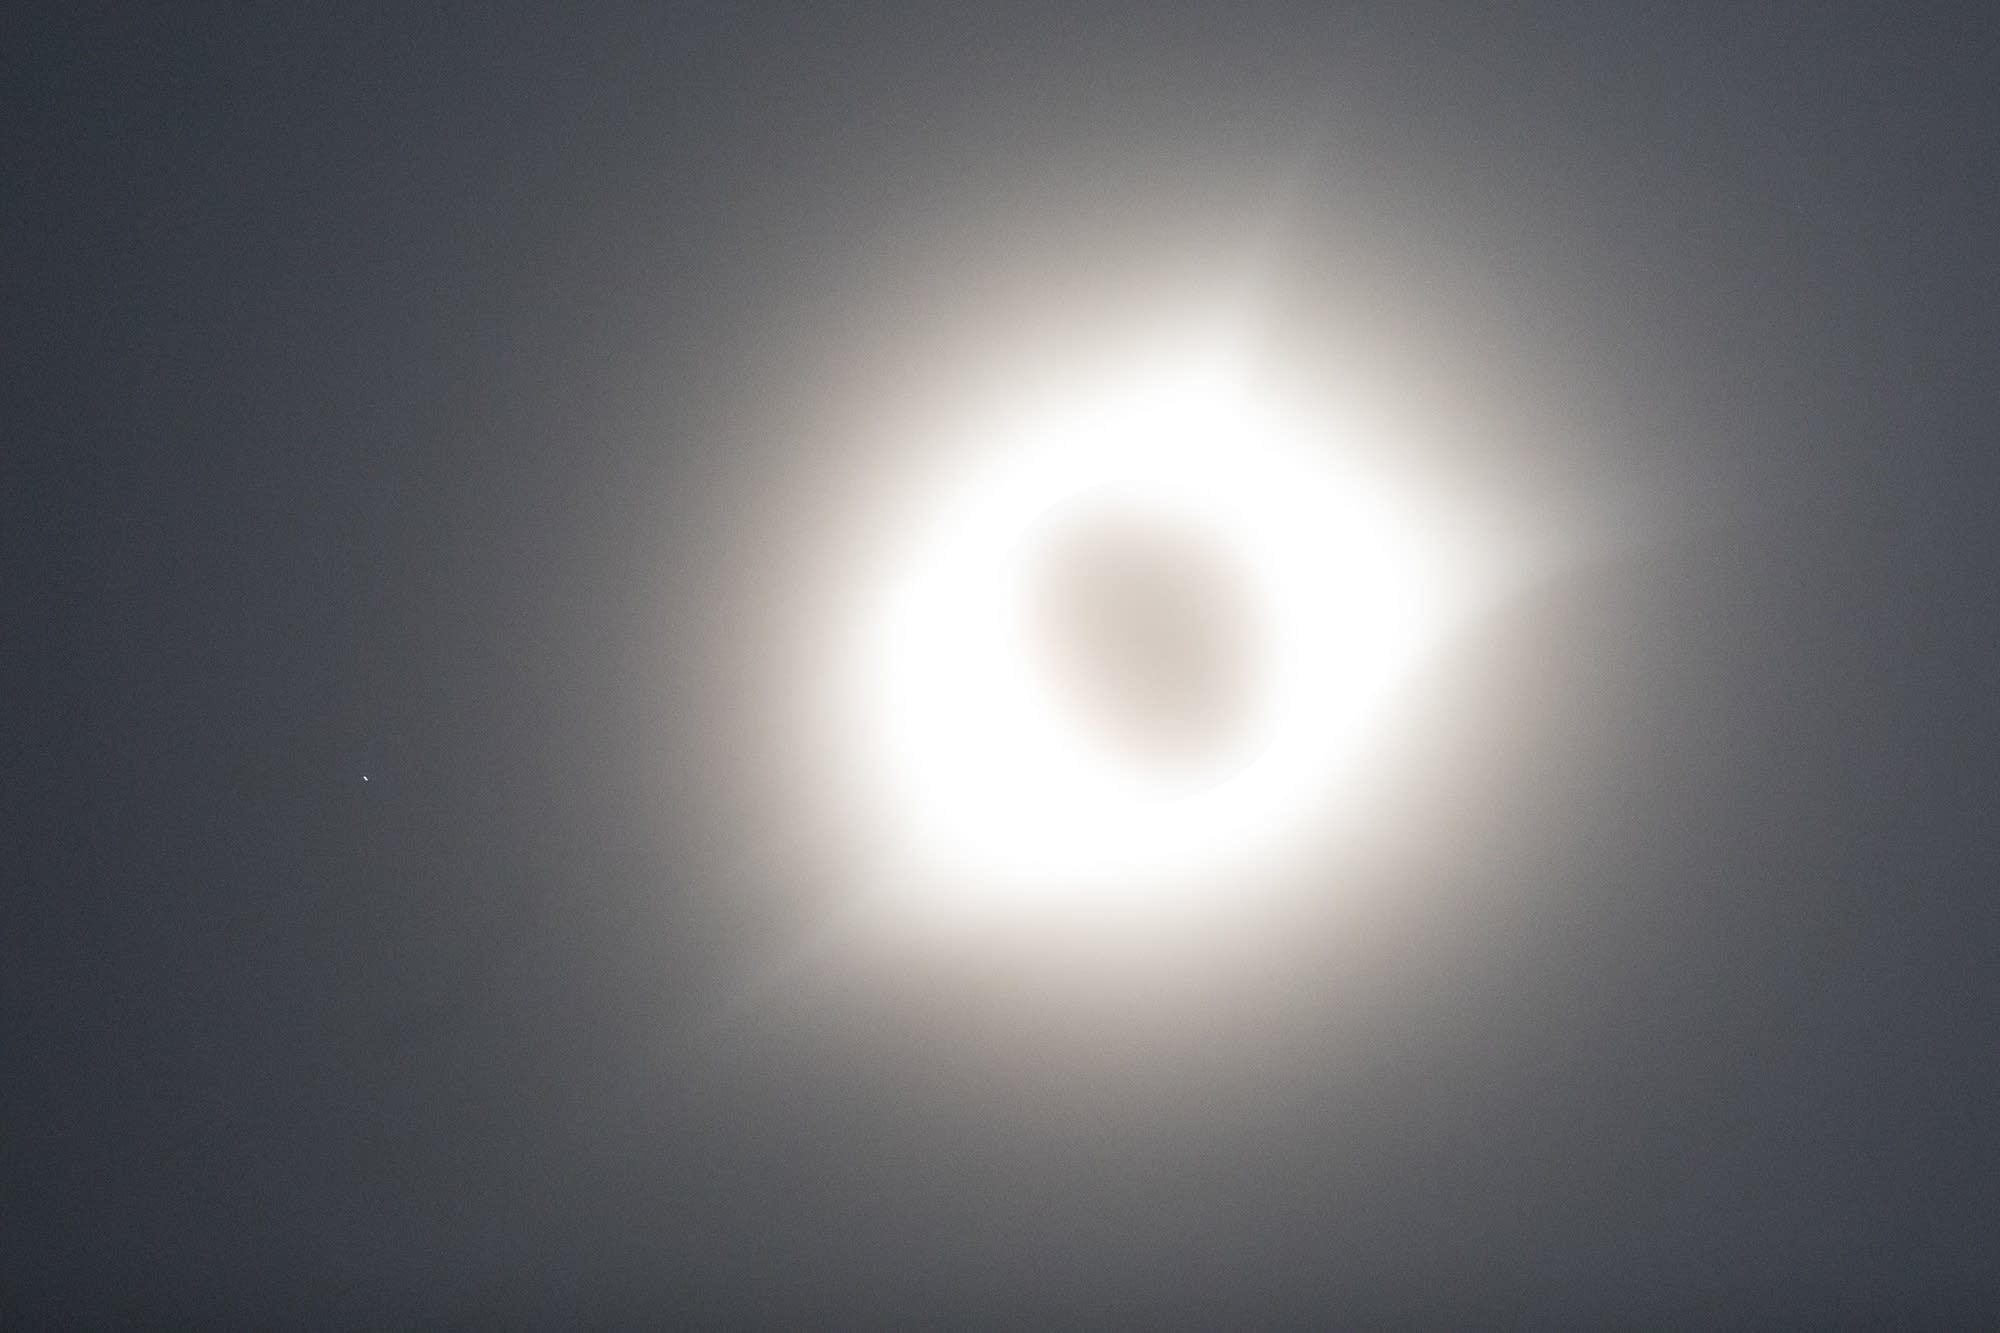 The star Regulus can be seen just to the left of the eclipse.